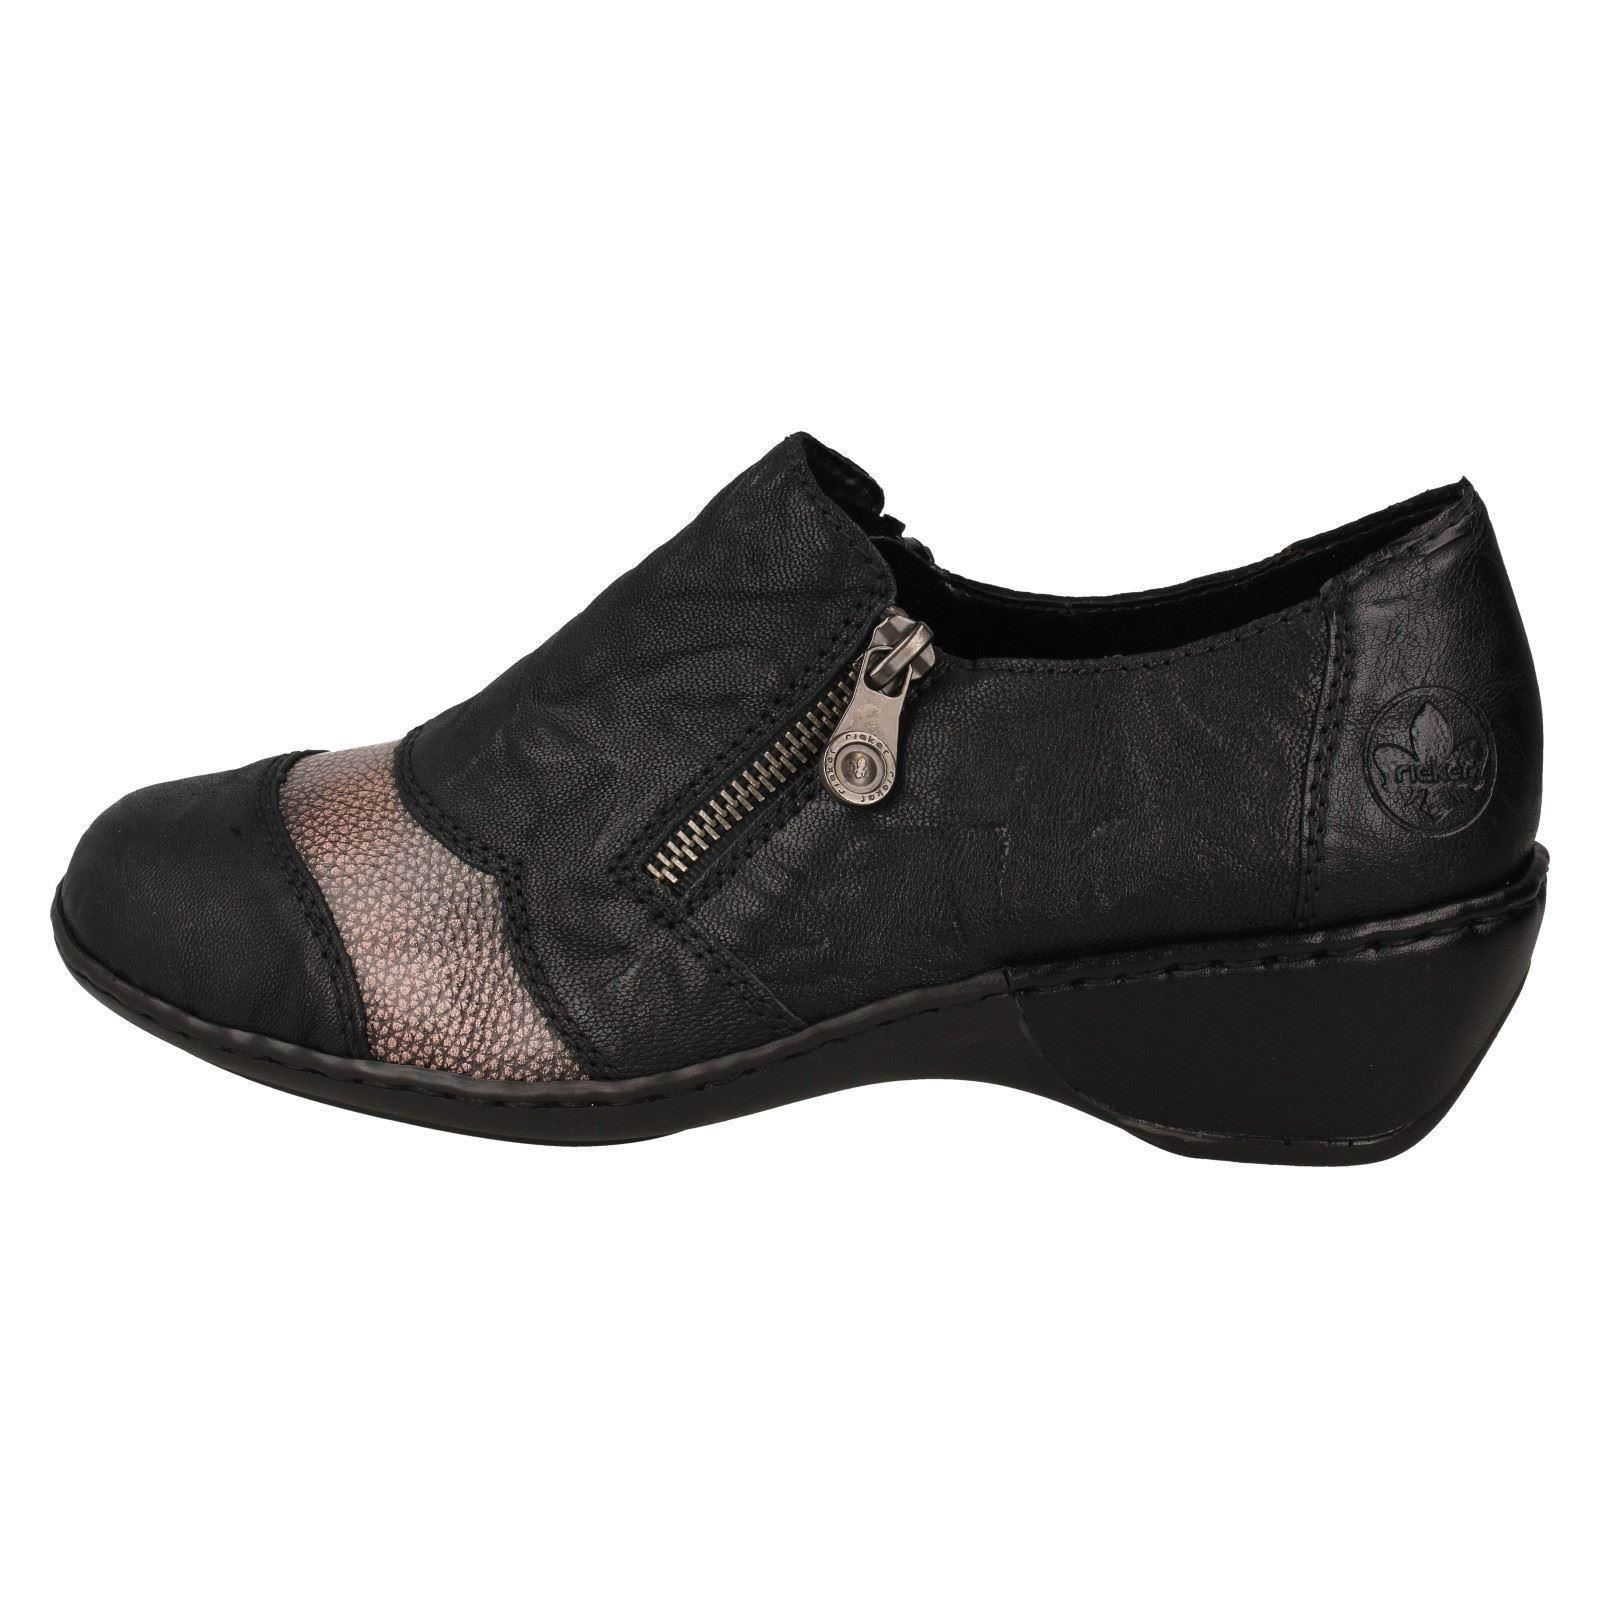 Ladies Rieker Stylish Heeled Trouser Shoes 47160 Black Combination